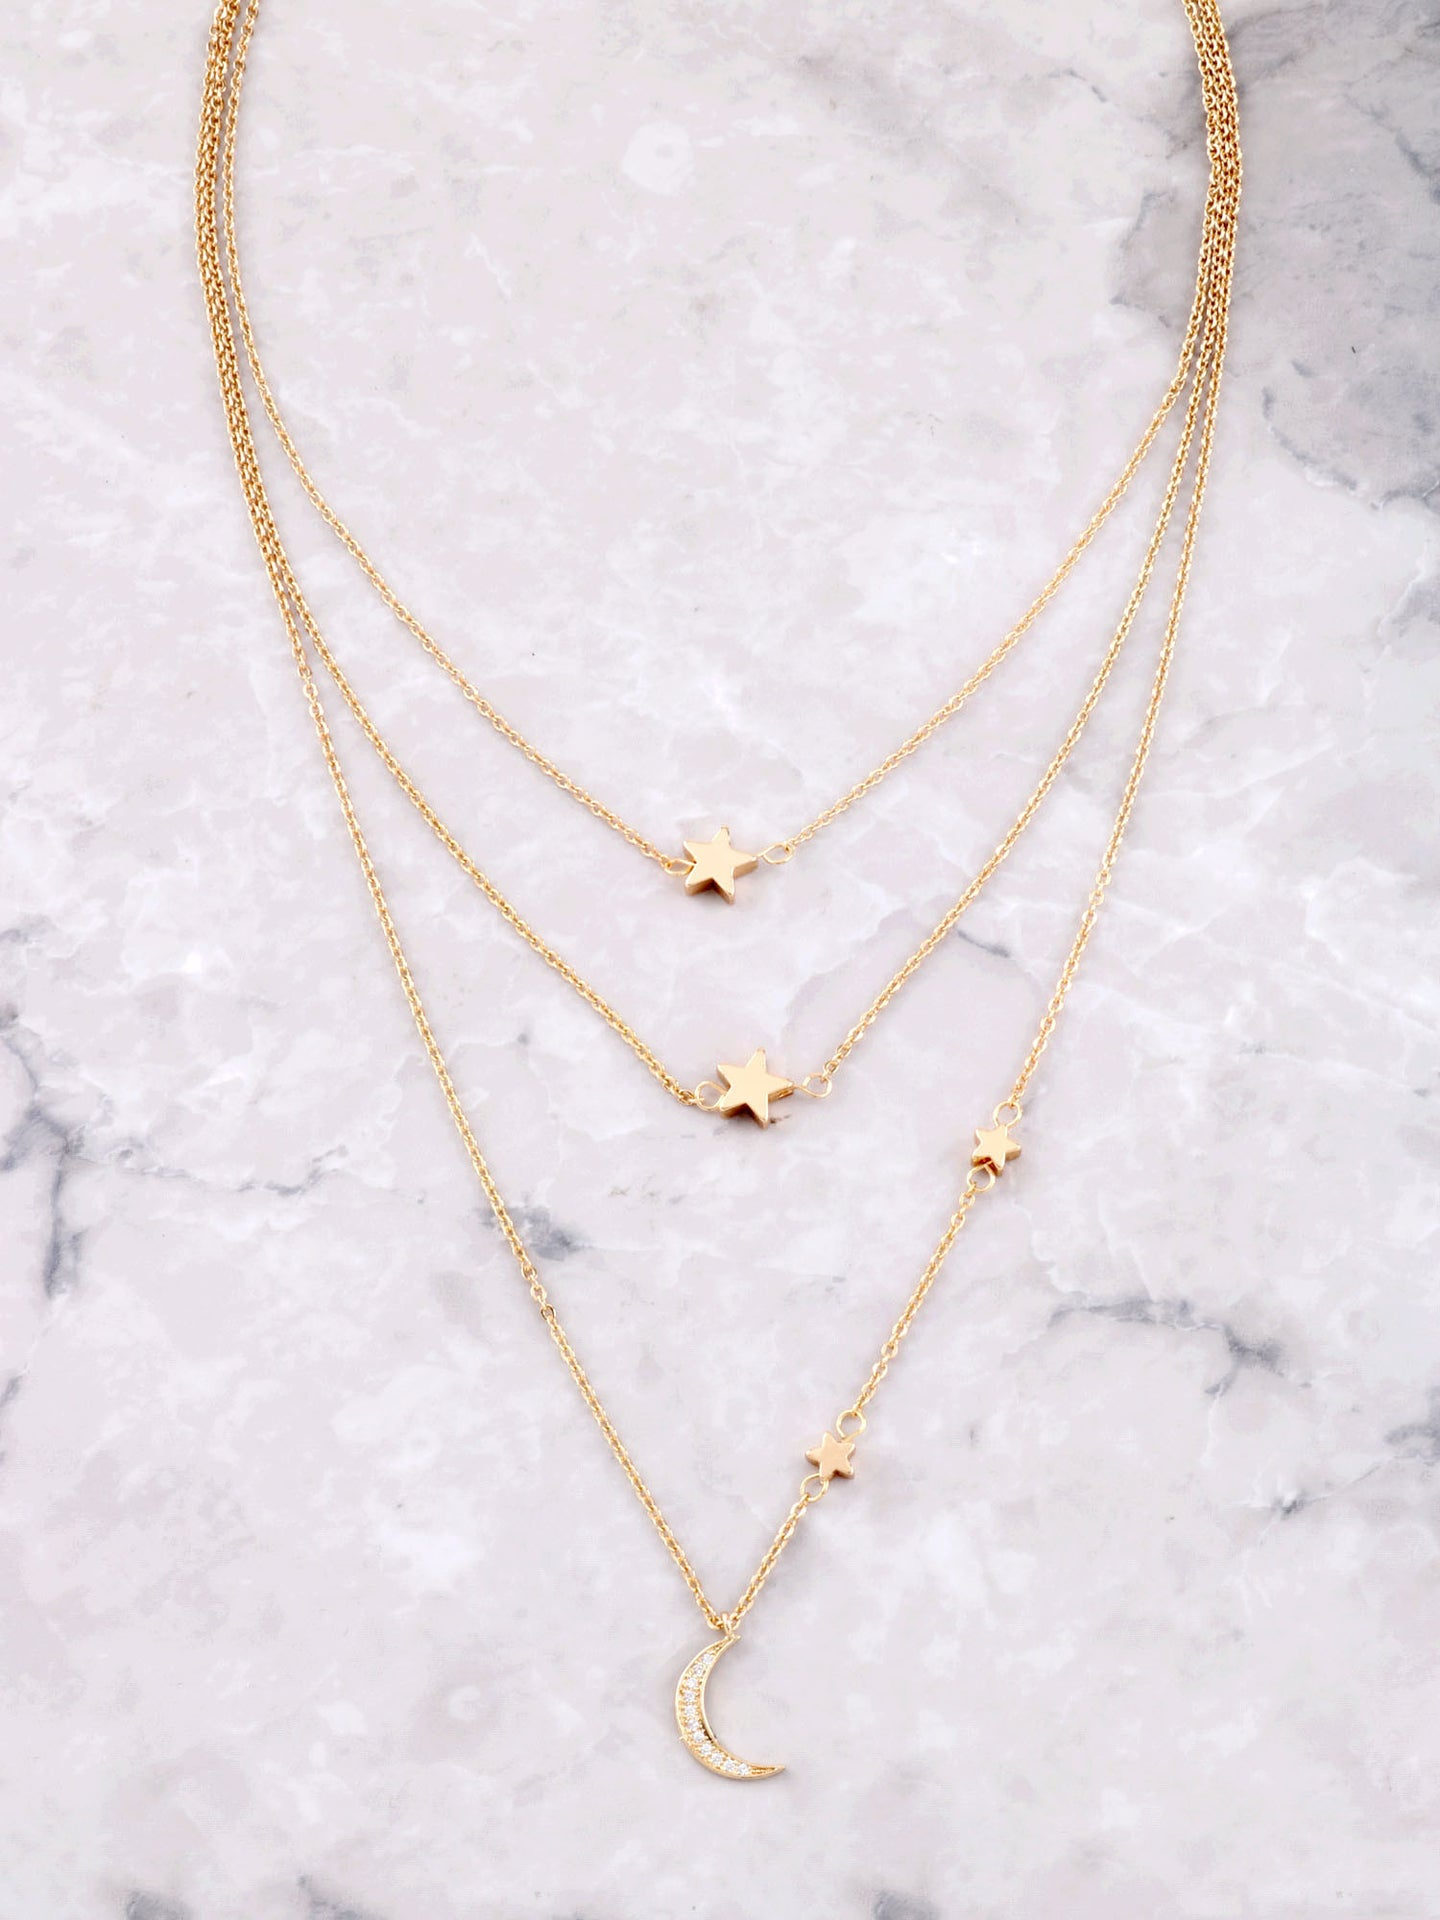 Starry Nights Layered Necklace Anarchy Street Gold